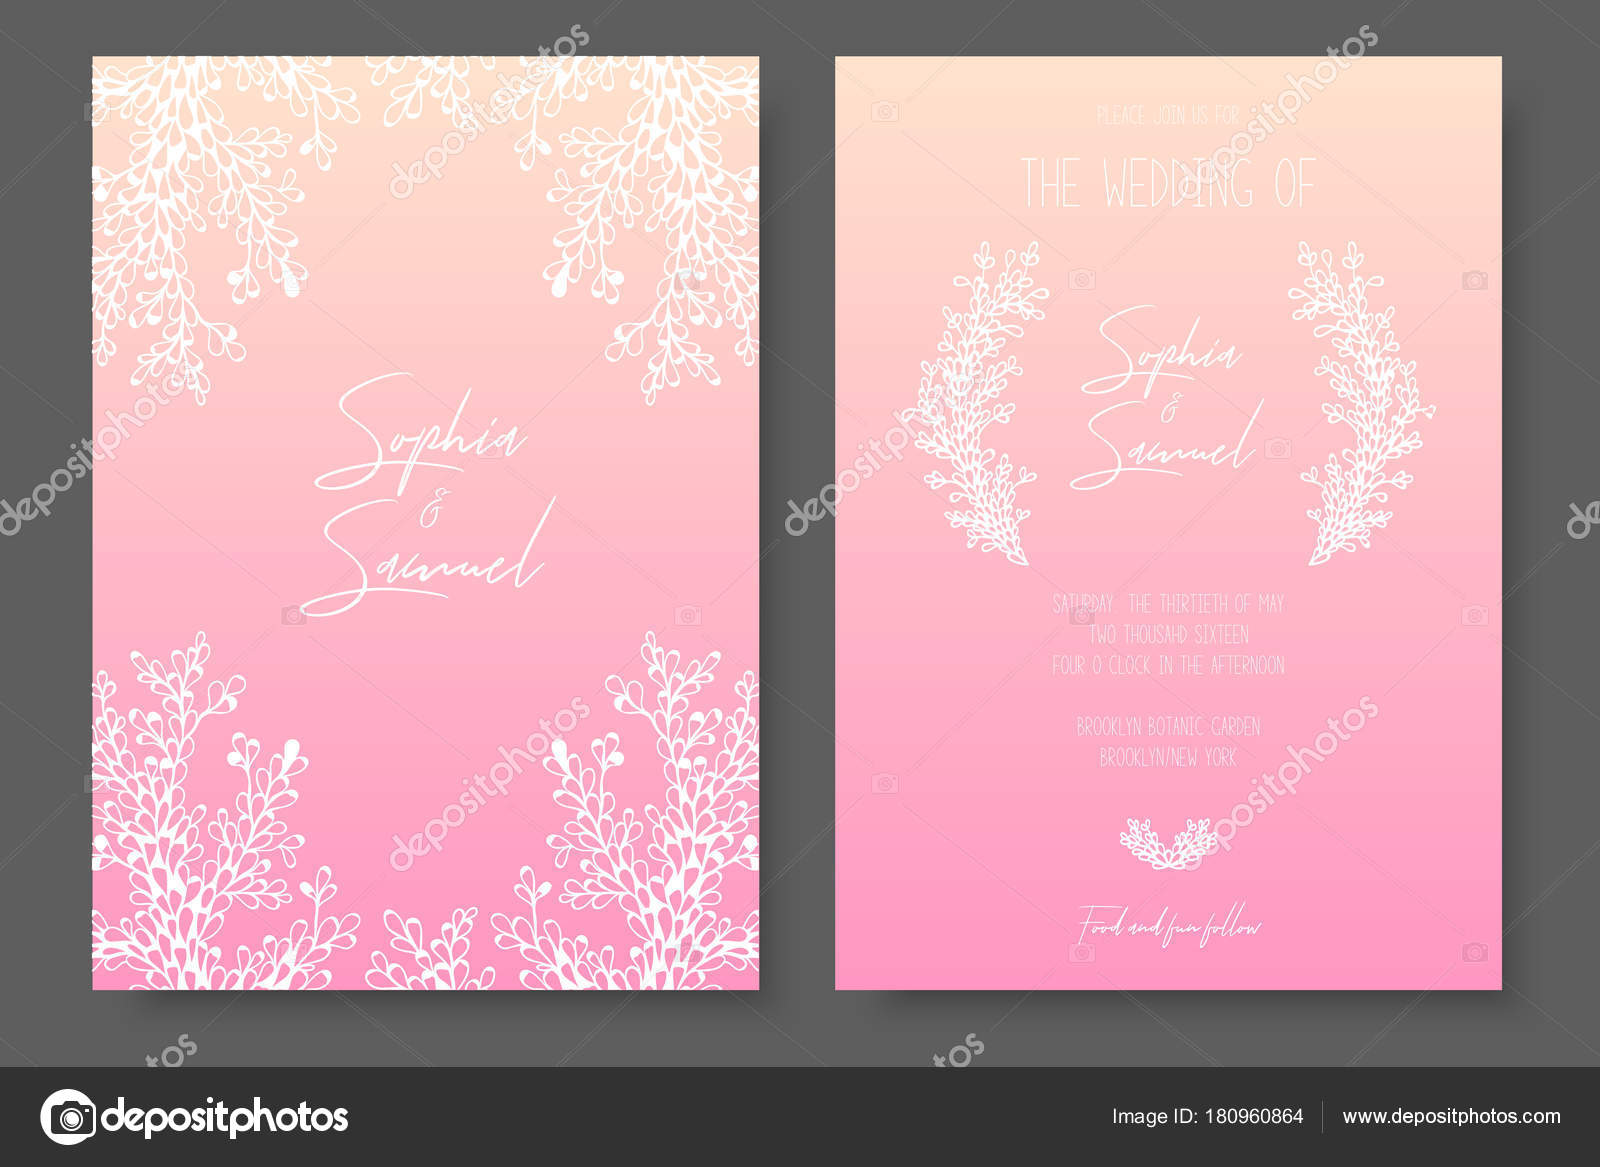 delicate wedding invitation templates pink design with abstract white plants a luxurious tepmlates for the save the date wedding invites greeting cards